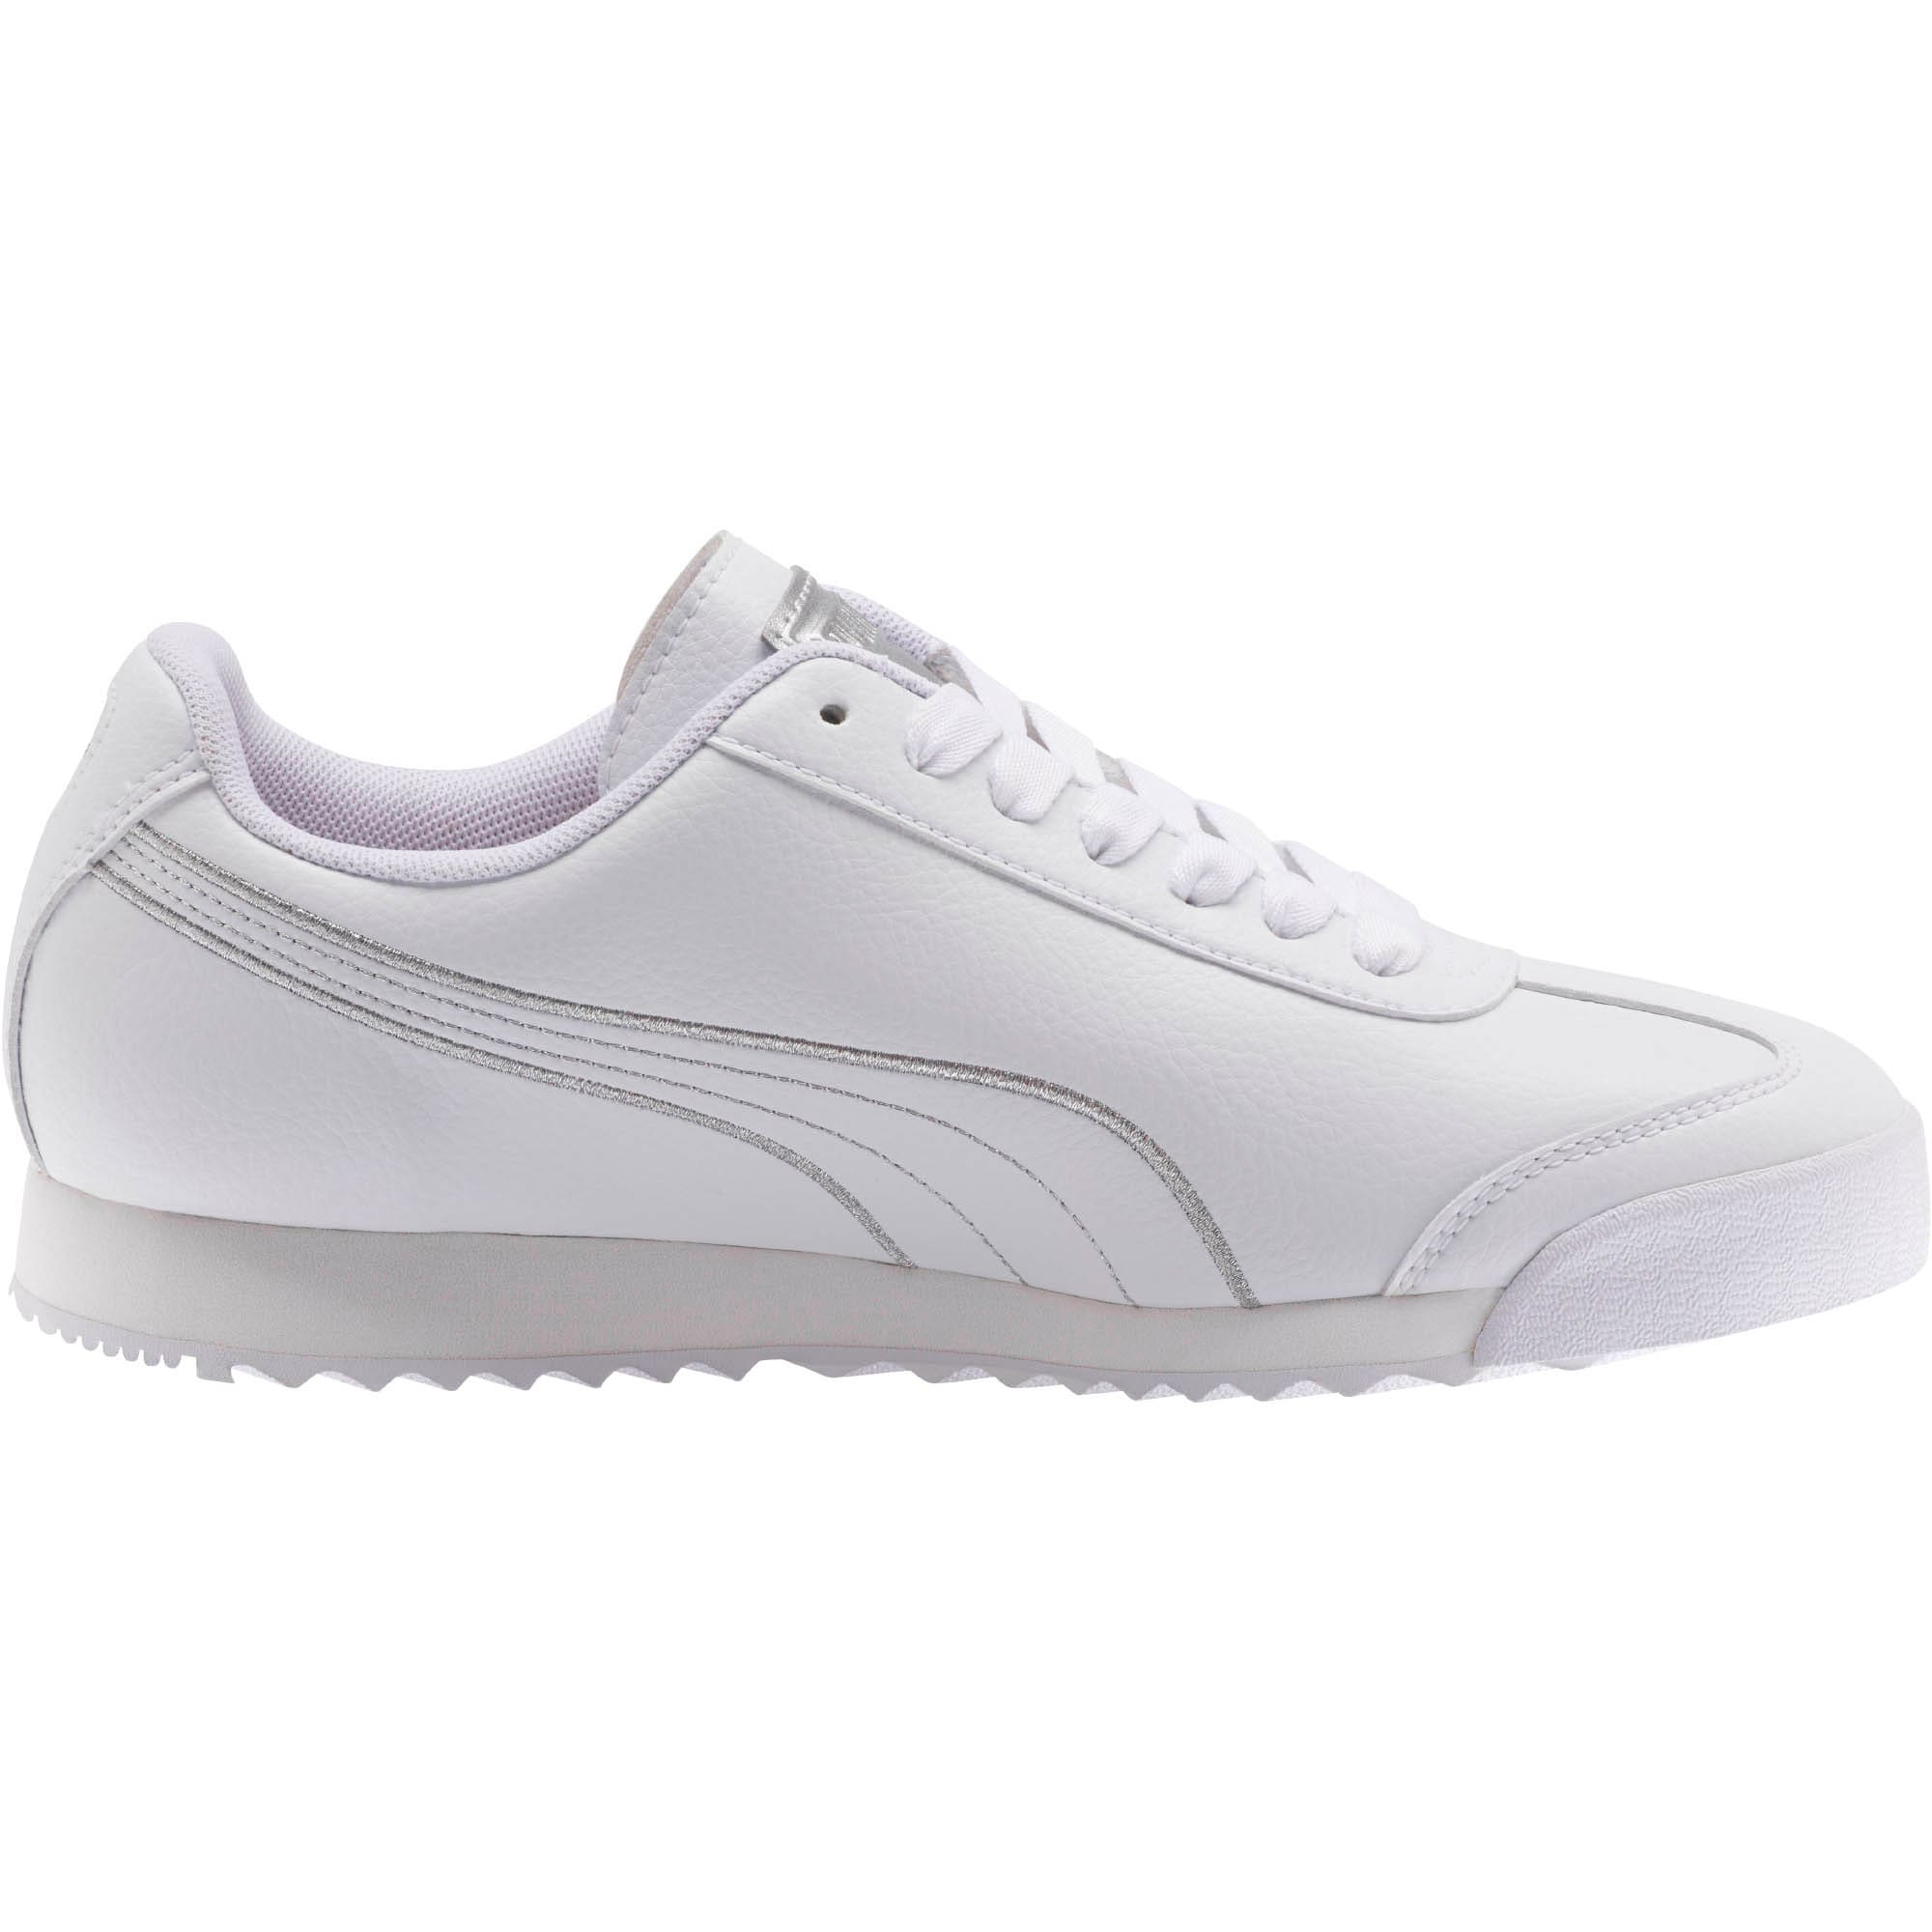 Thumbnail 4 of Roma Metallic Stitch Women's Sneakers, Puma White-Puma Silver, medium